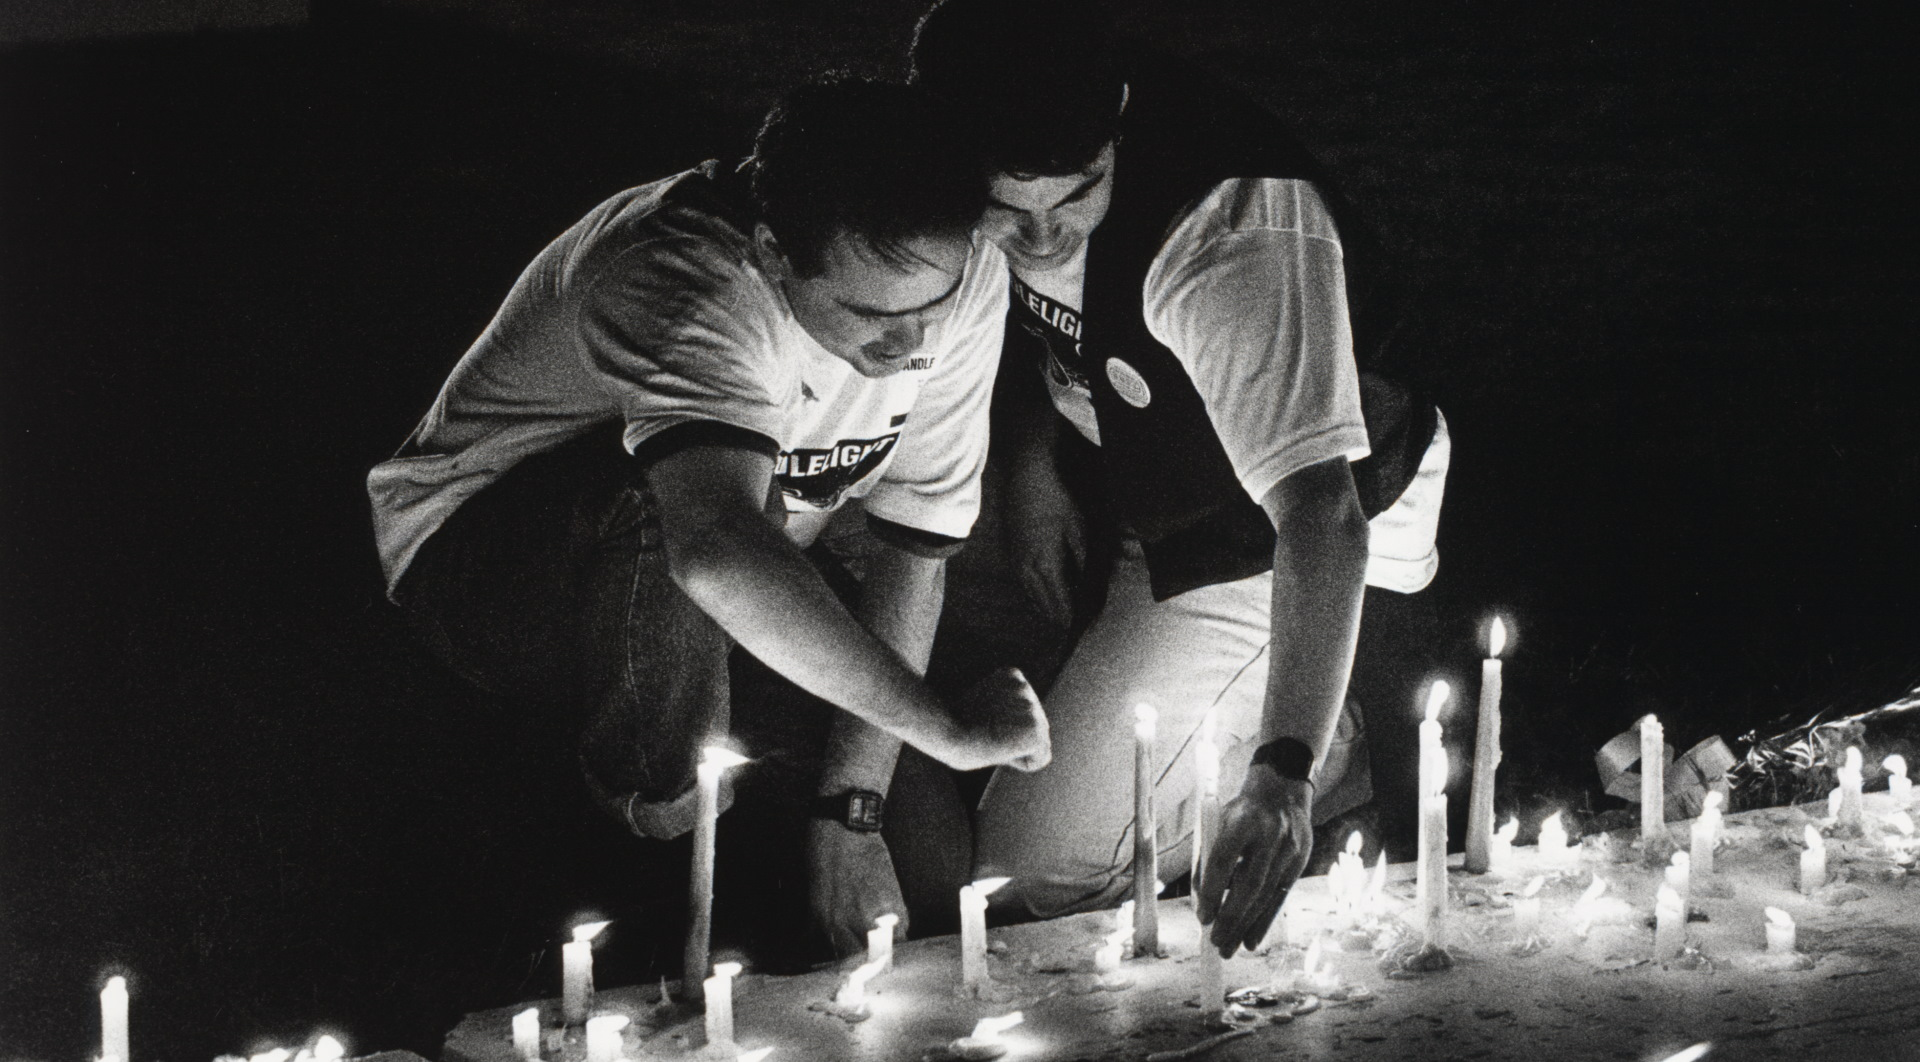 Two men with candles